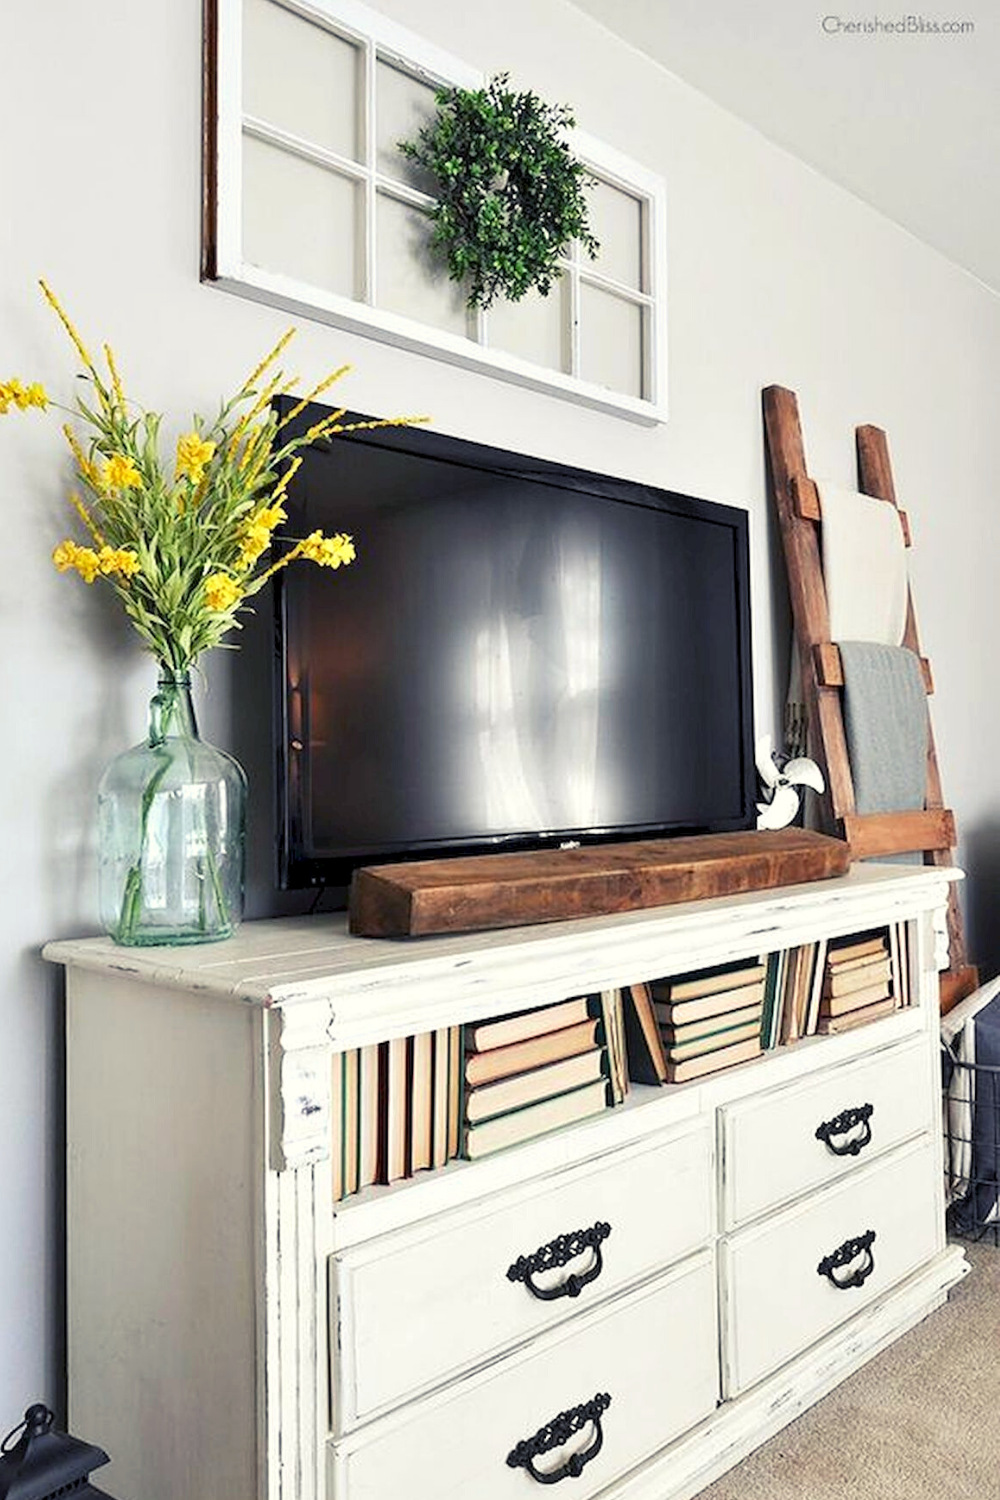 10 Bautiful Farmhouse Tv Stand Dsign Ideas And Decor Tv Stand Decor Living Room Tv Wall Decor Above Tv